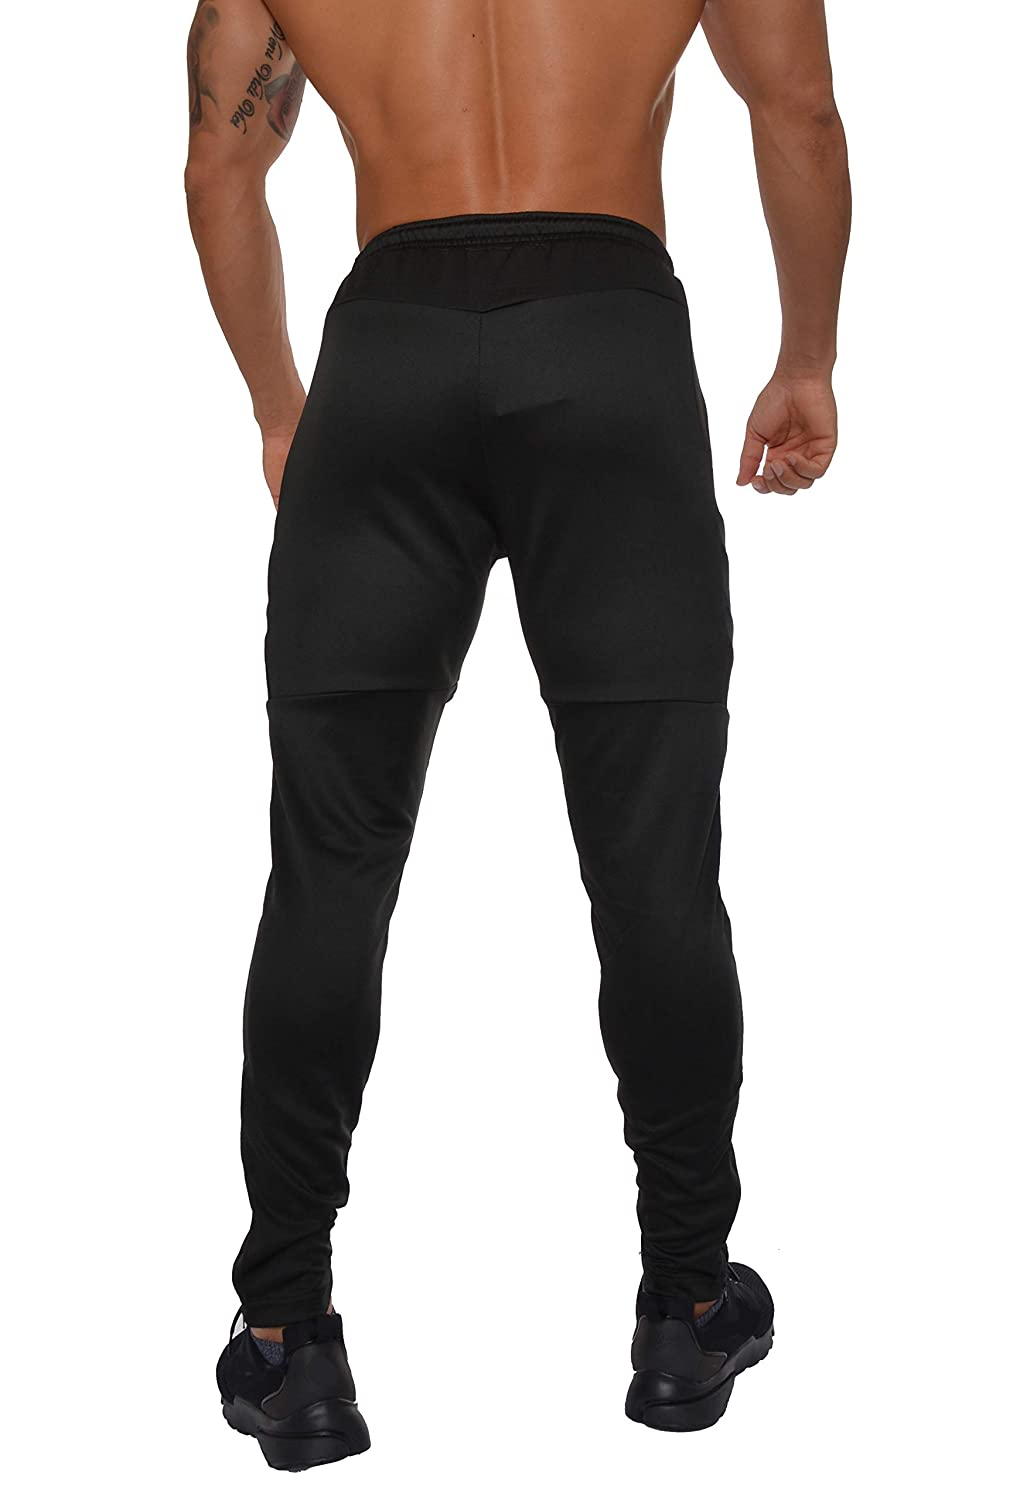 bce5910f67d9e YoungLA Track Pants for Men Workout Athletic Gym Joggers Lightweight  Training Sweatpants Tapered Fit 205 at Amazon Men's Clothing store: